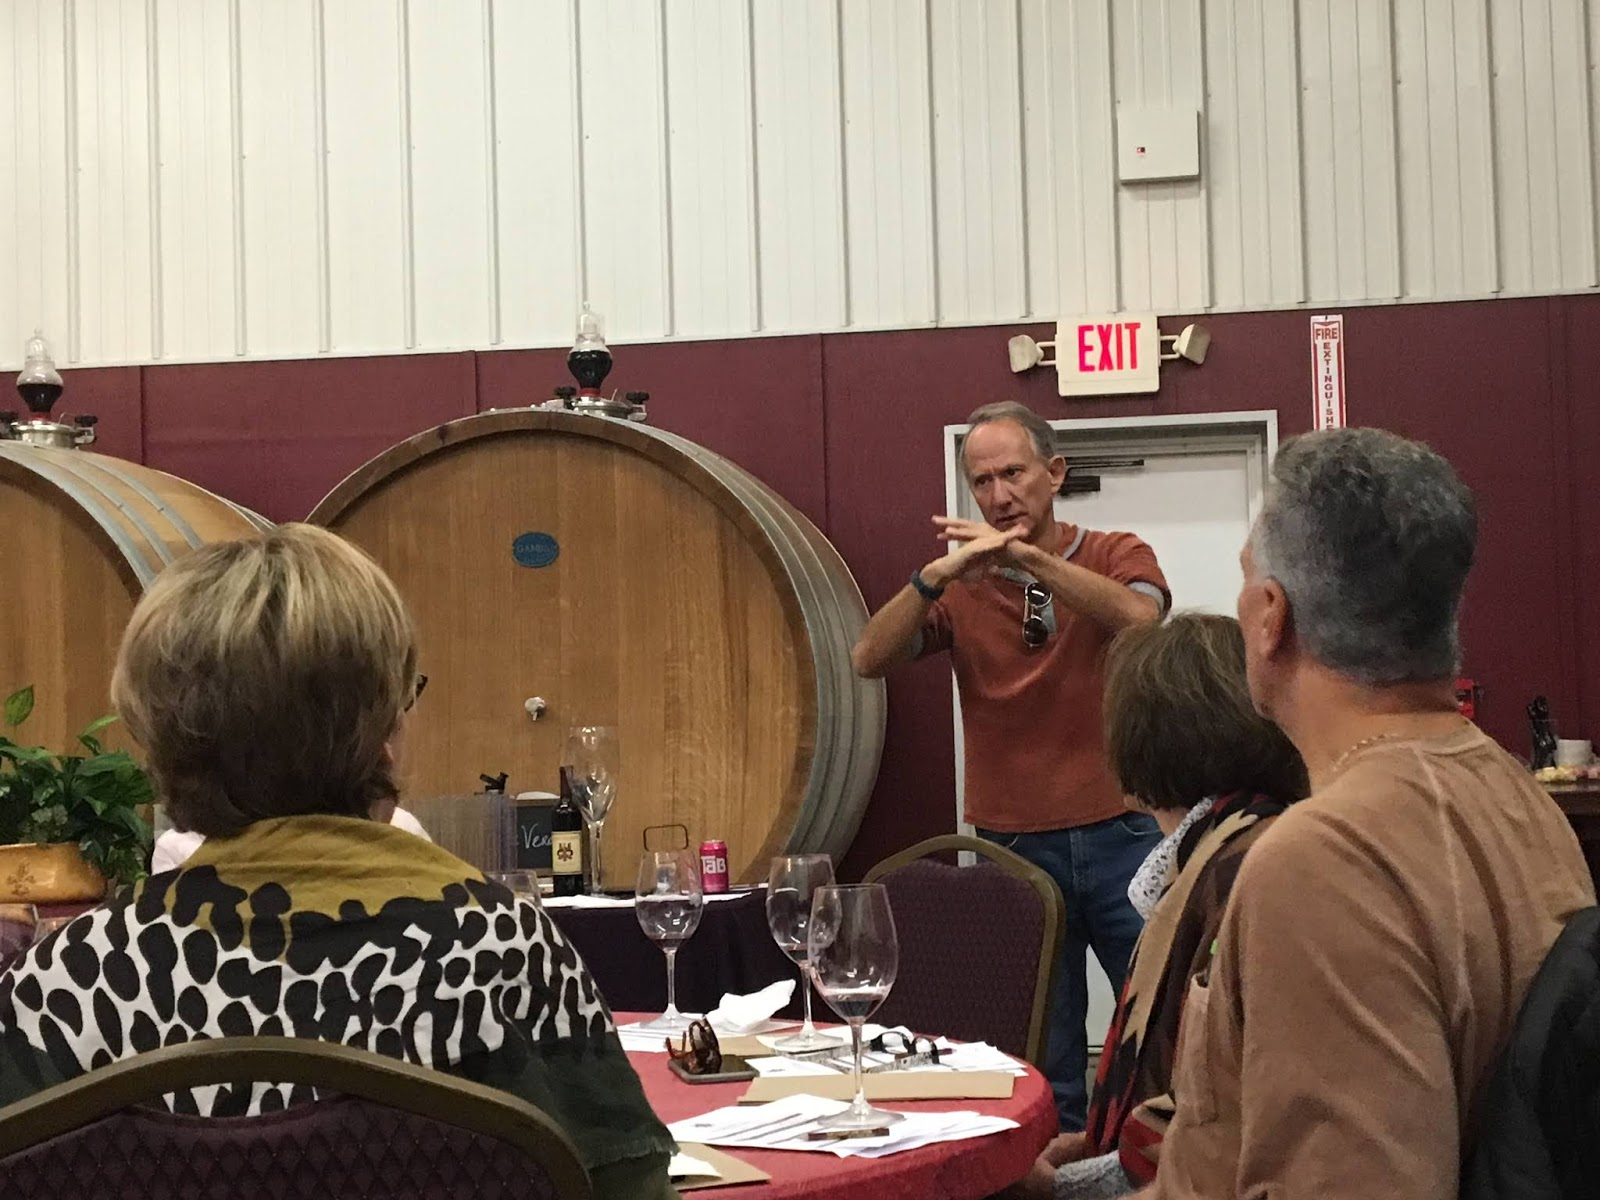 Jay Raffaldini leads a group in wine blending during the Assemblaggio.